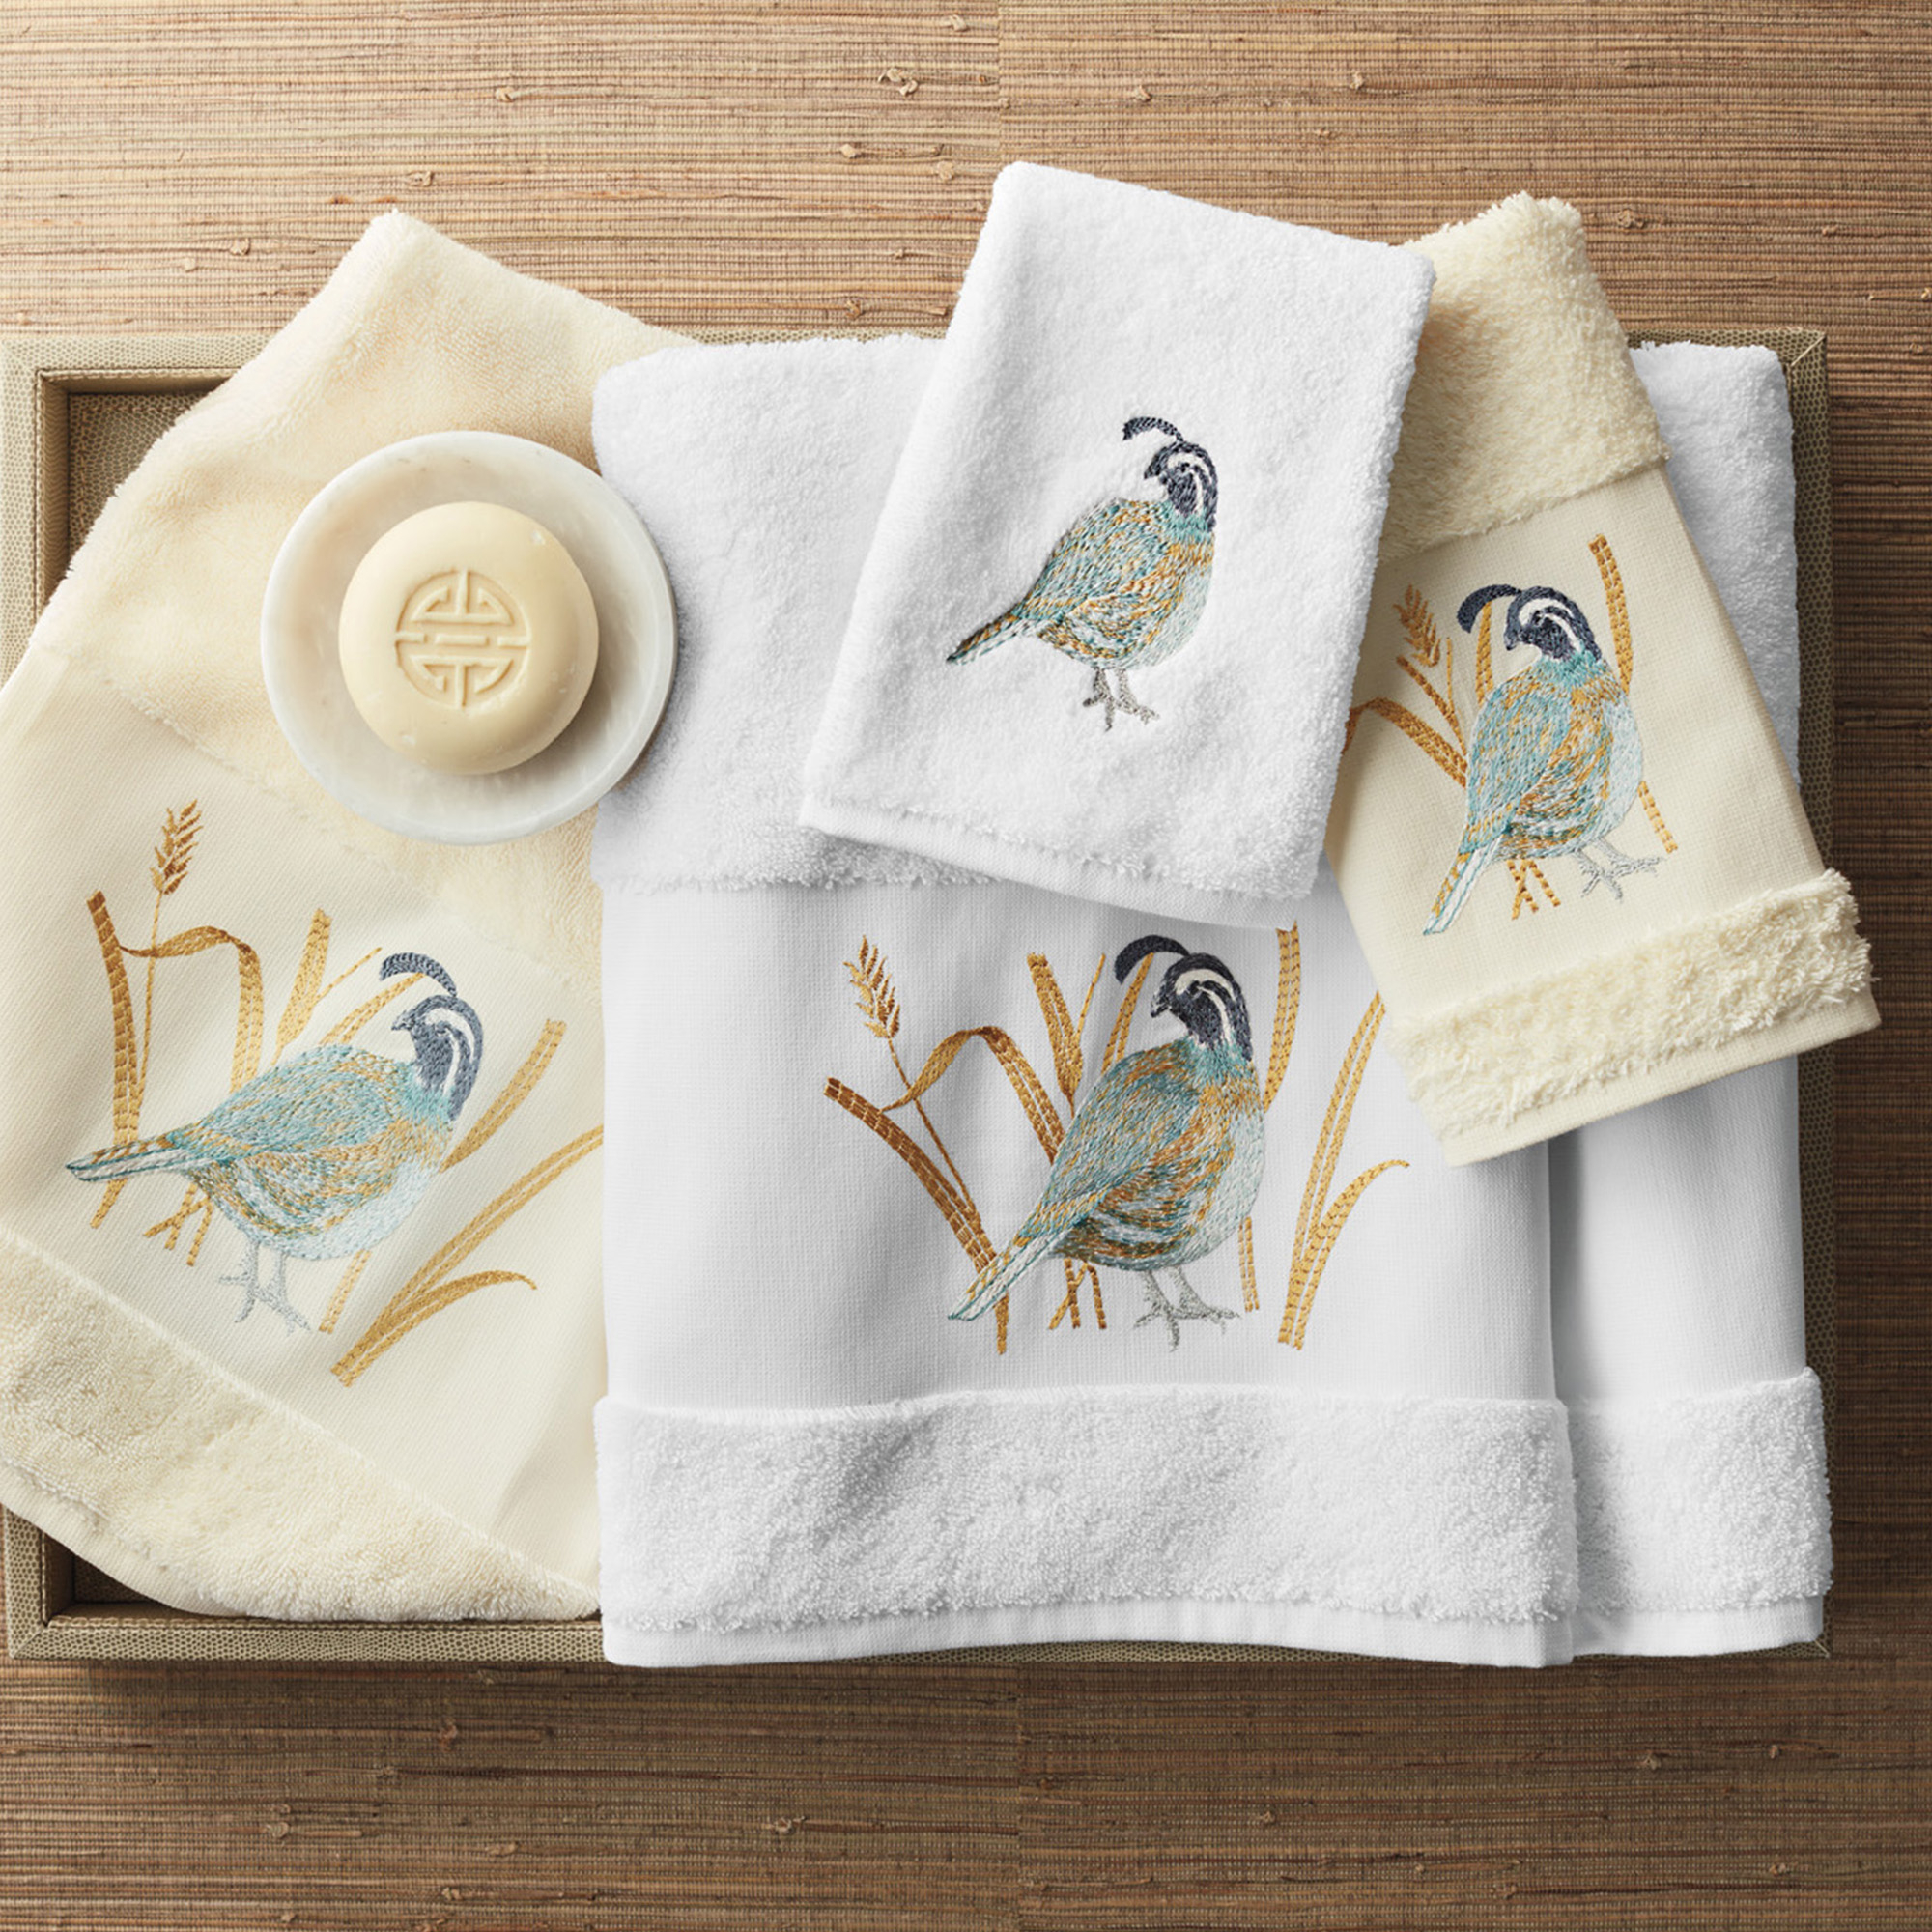 Embroidered Quail Towels